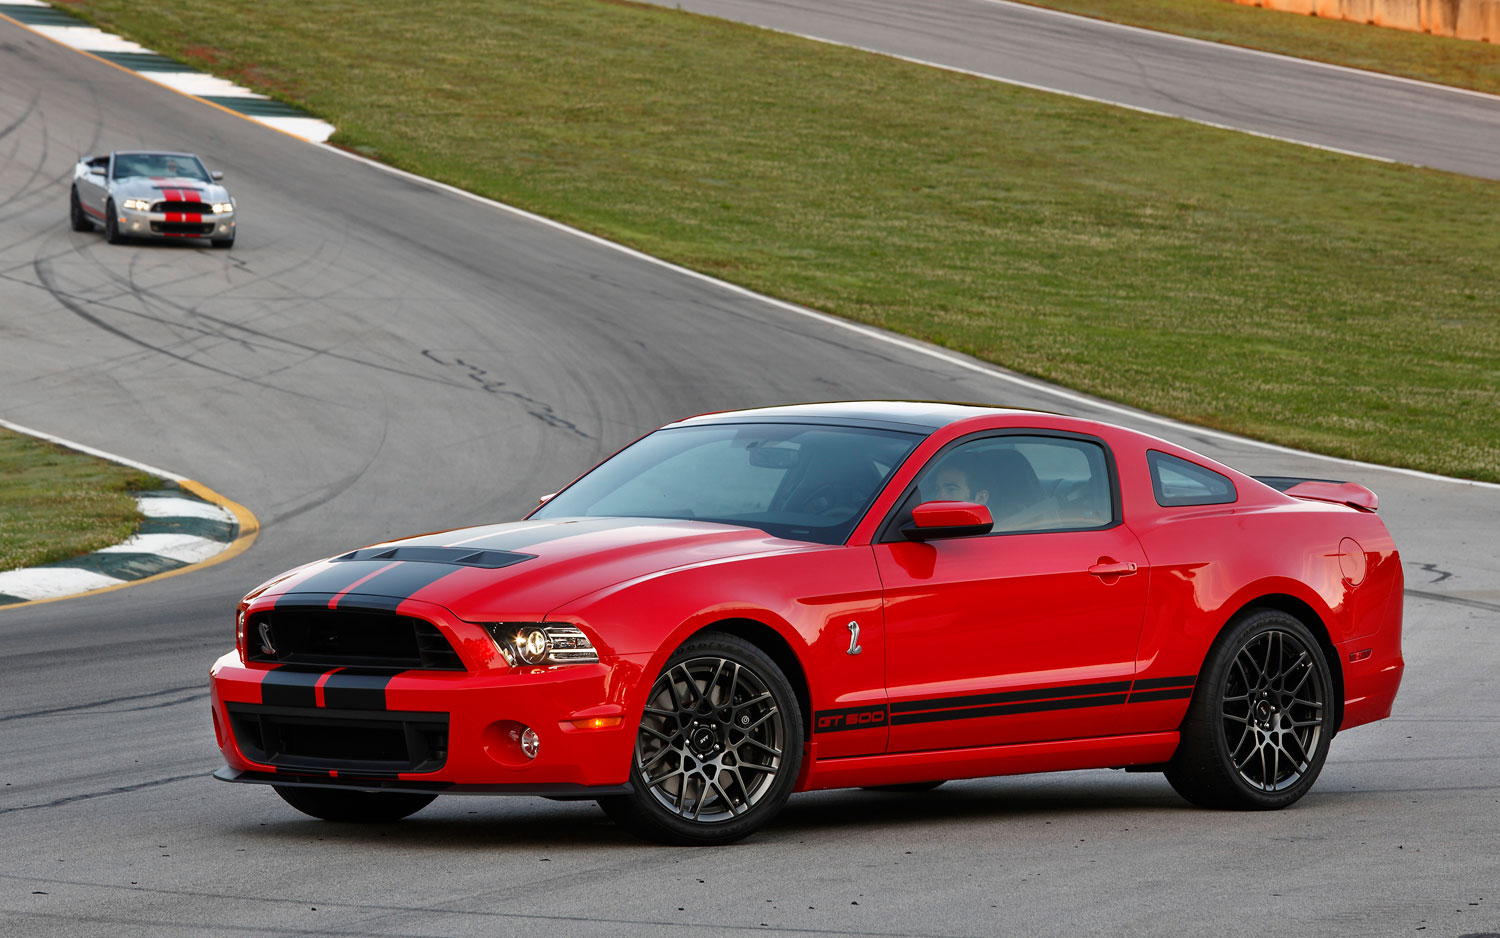 2013 Ford Shelby GT500 First Drive - Automobile Magazine